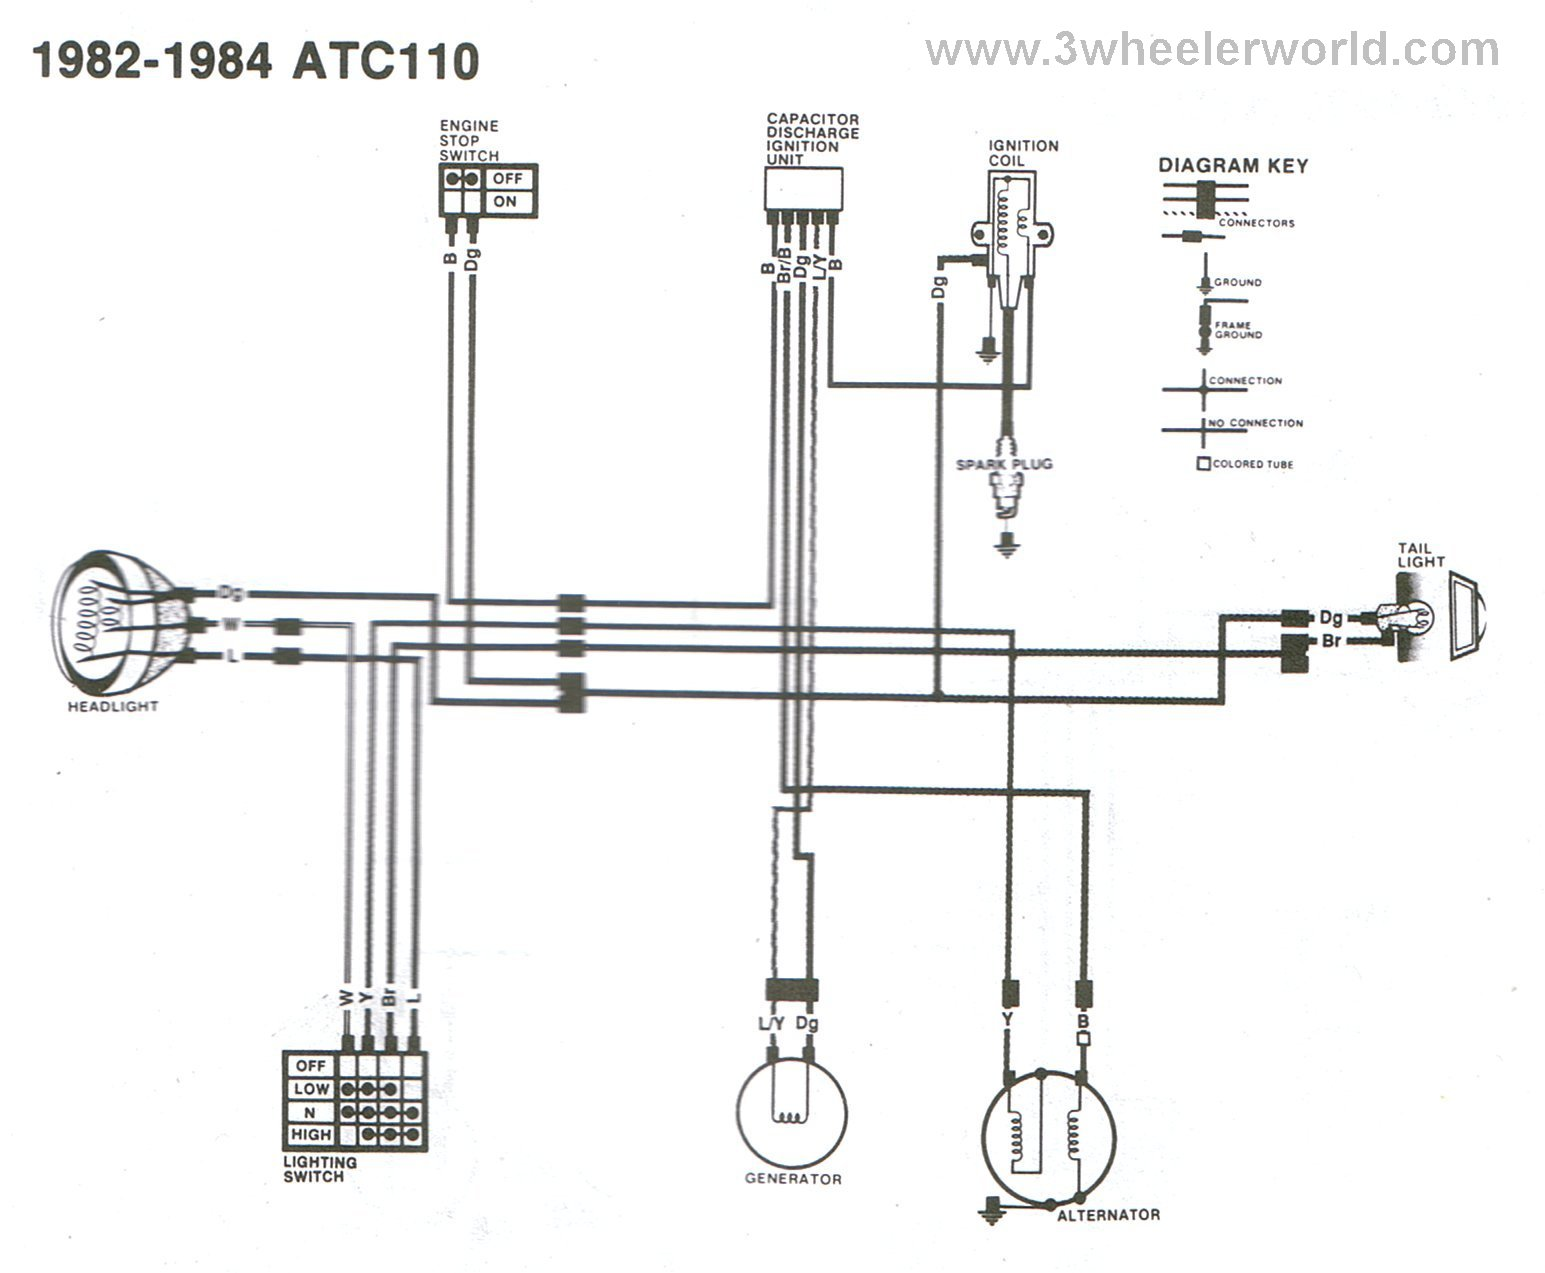 3 WHeeLeR WoRLD-Tech Help Honda Wiring Diagrams